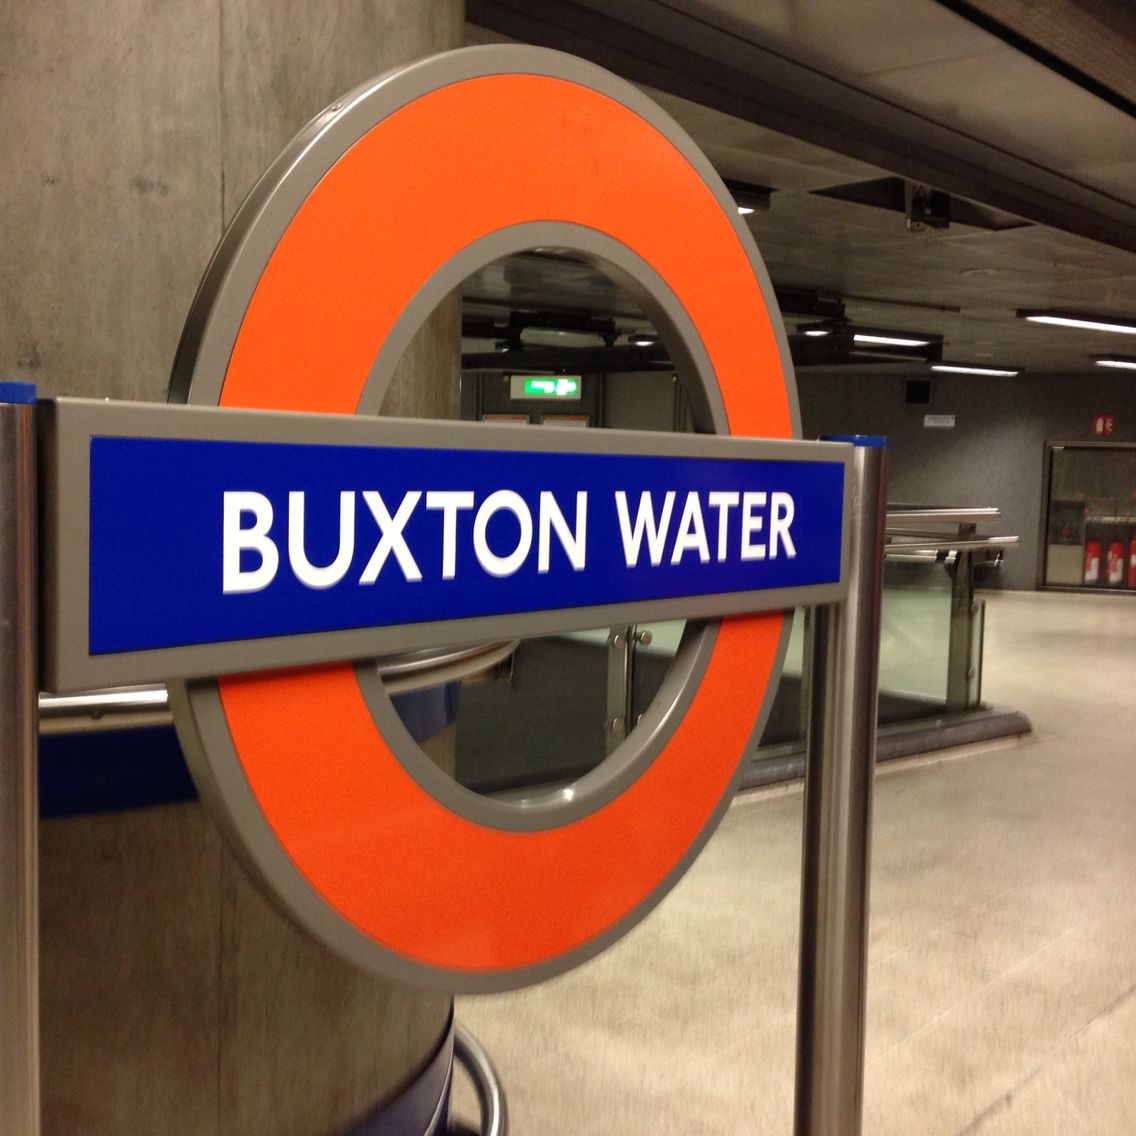 Over here in London one of the tube stations changed their name to #buxtonwaters in thanks for their amazing job and sponcering of the London marathon 2015